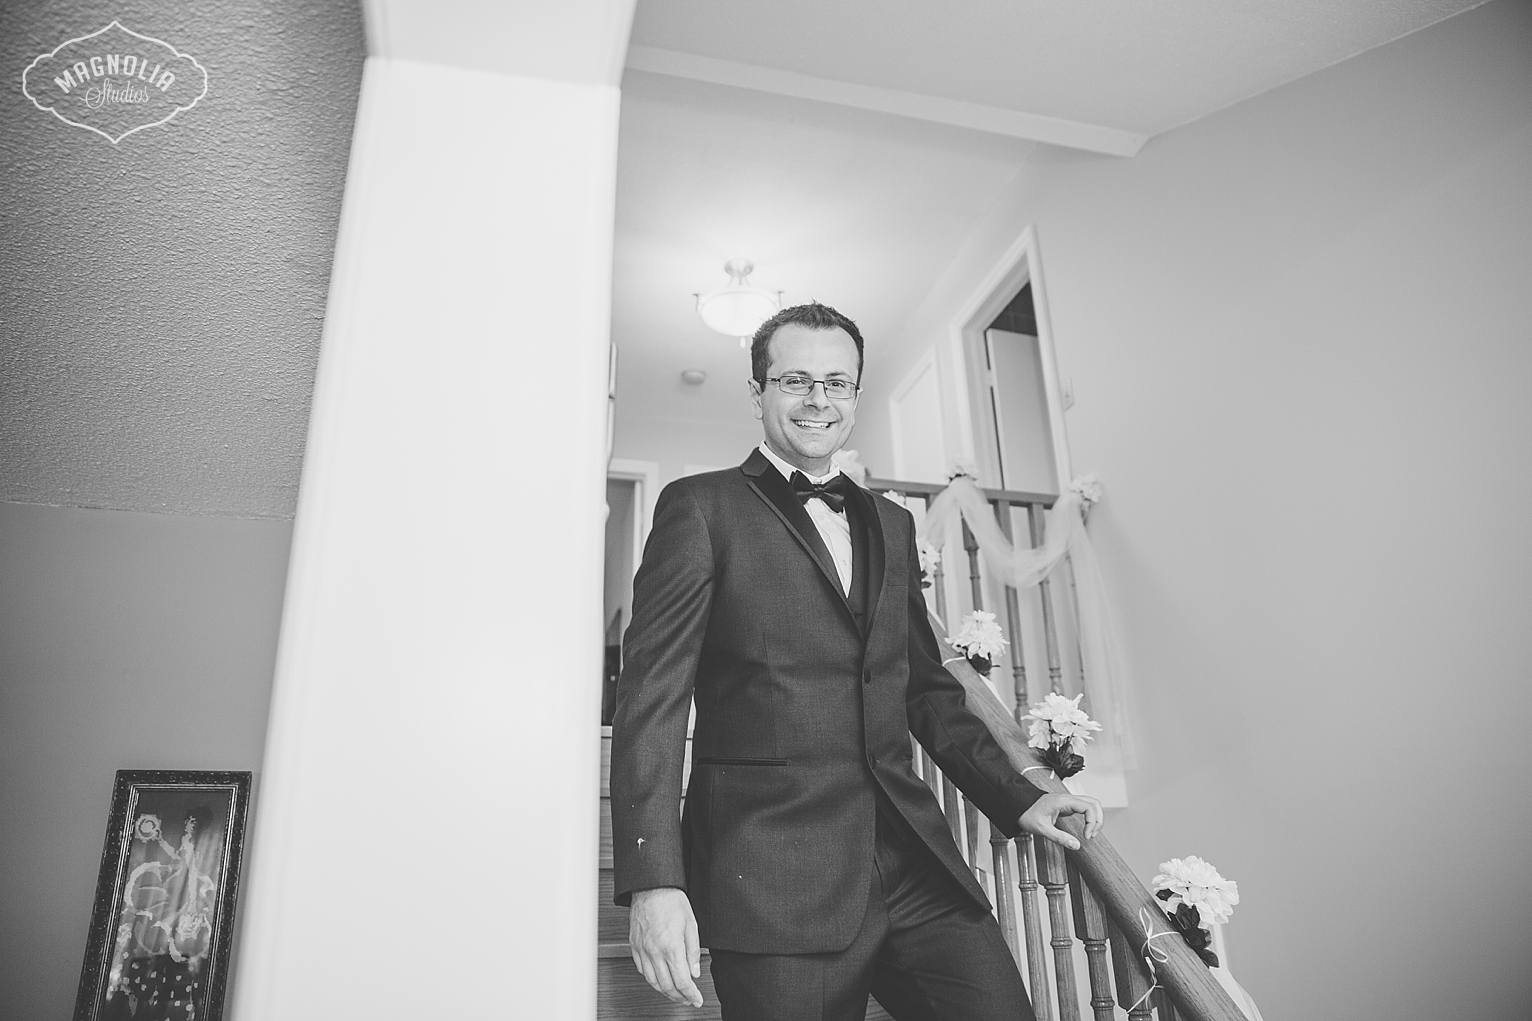 grooms vintage suit with bowtie